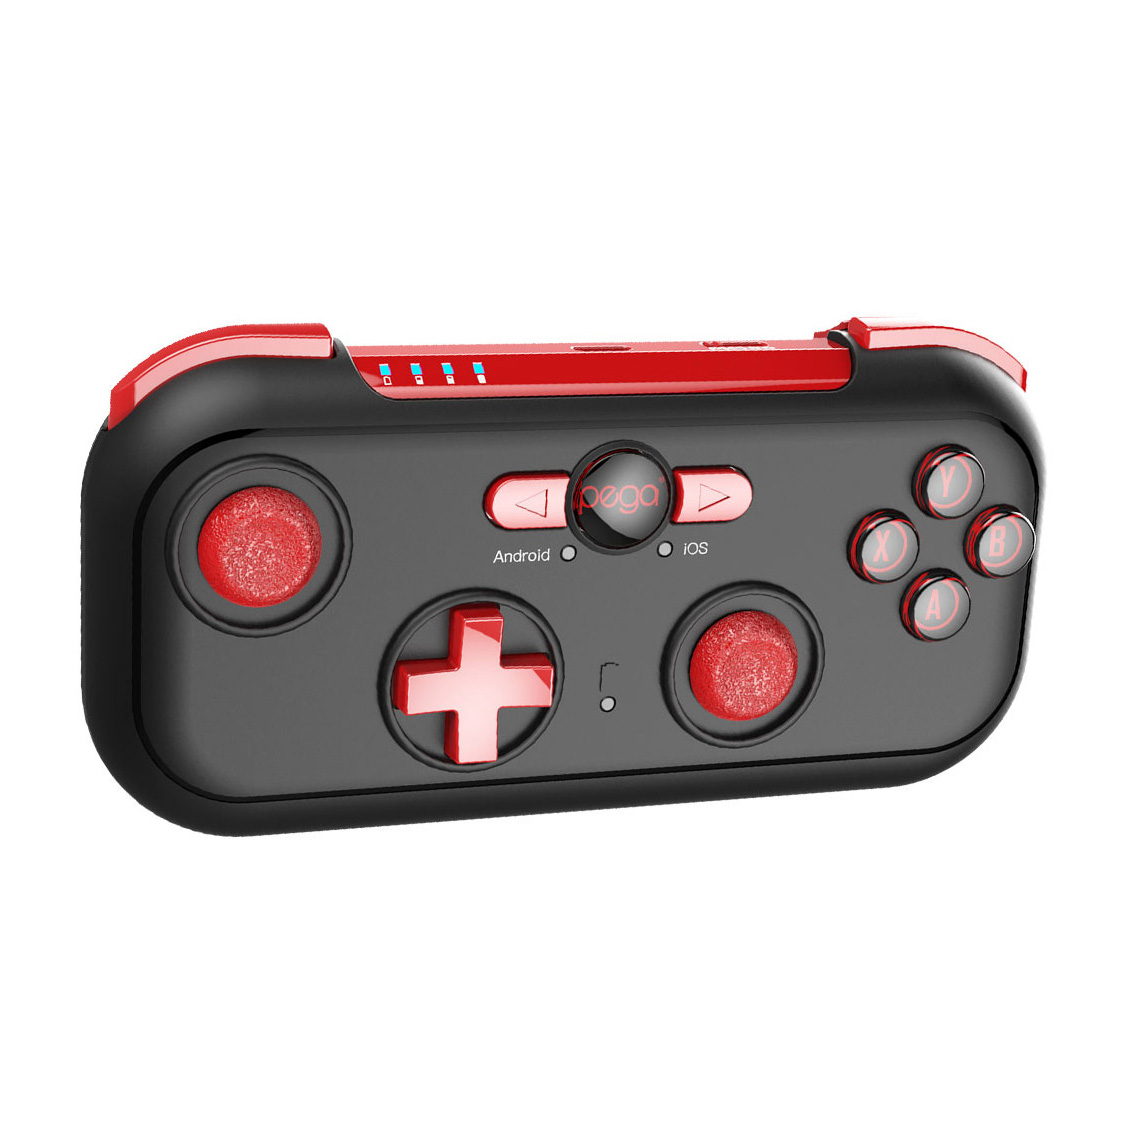 Ipega Pg-9085 Pg 9085 Bluetooth Gamepad Joystick Pad Red Wizard Wireless Game Controller For Android/ Ios/ Nintendo/ Switch/wi Pure And Mild Flavor Consumer Electronics Video Games